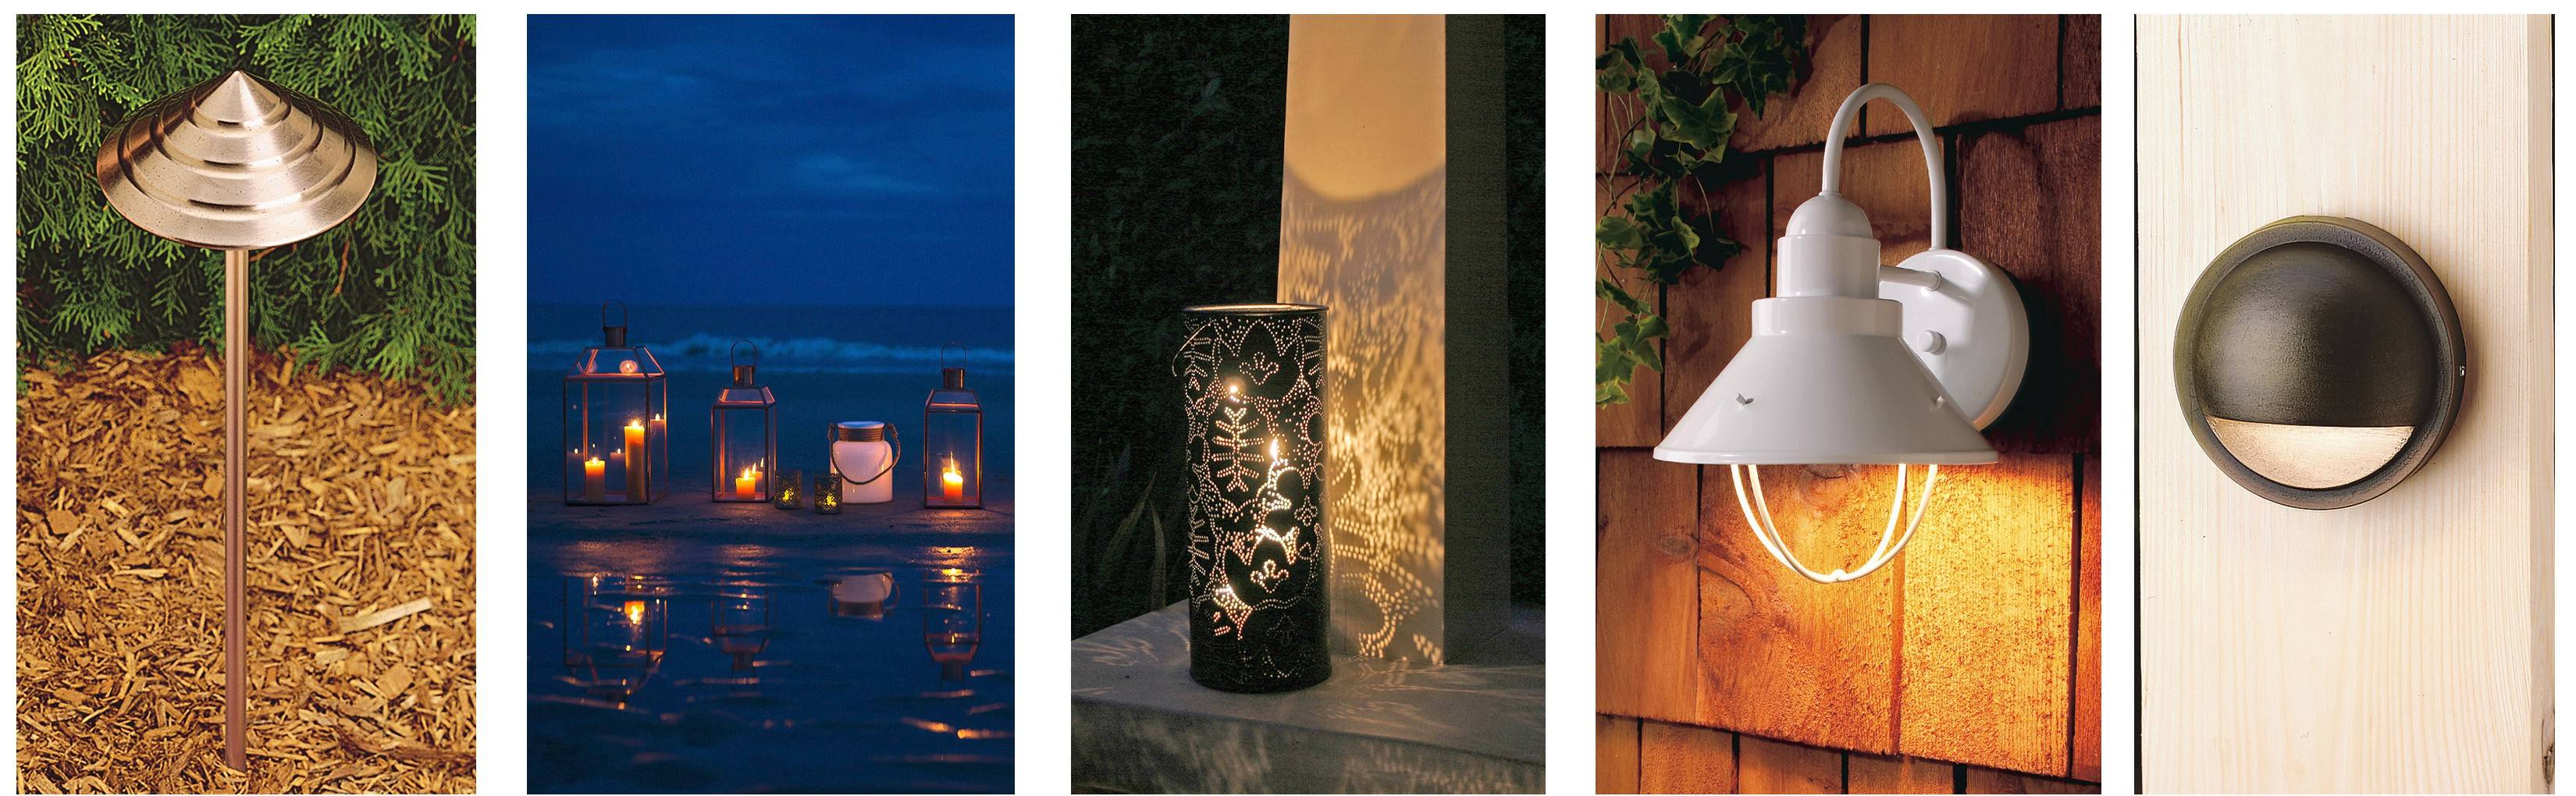 Outdoor lighting can have a dramatic impact on landscaping. Some outdoor lighting options include, from left, Kichler's copper path lights, Terrain's copper Mansard lanterns, NotNeutral's Season metal lantern, Plow & Hearth's Old Brooke light and Kichler's cast-brass deck light.